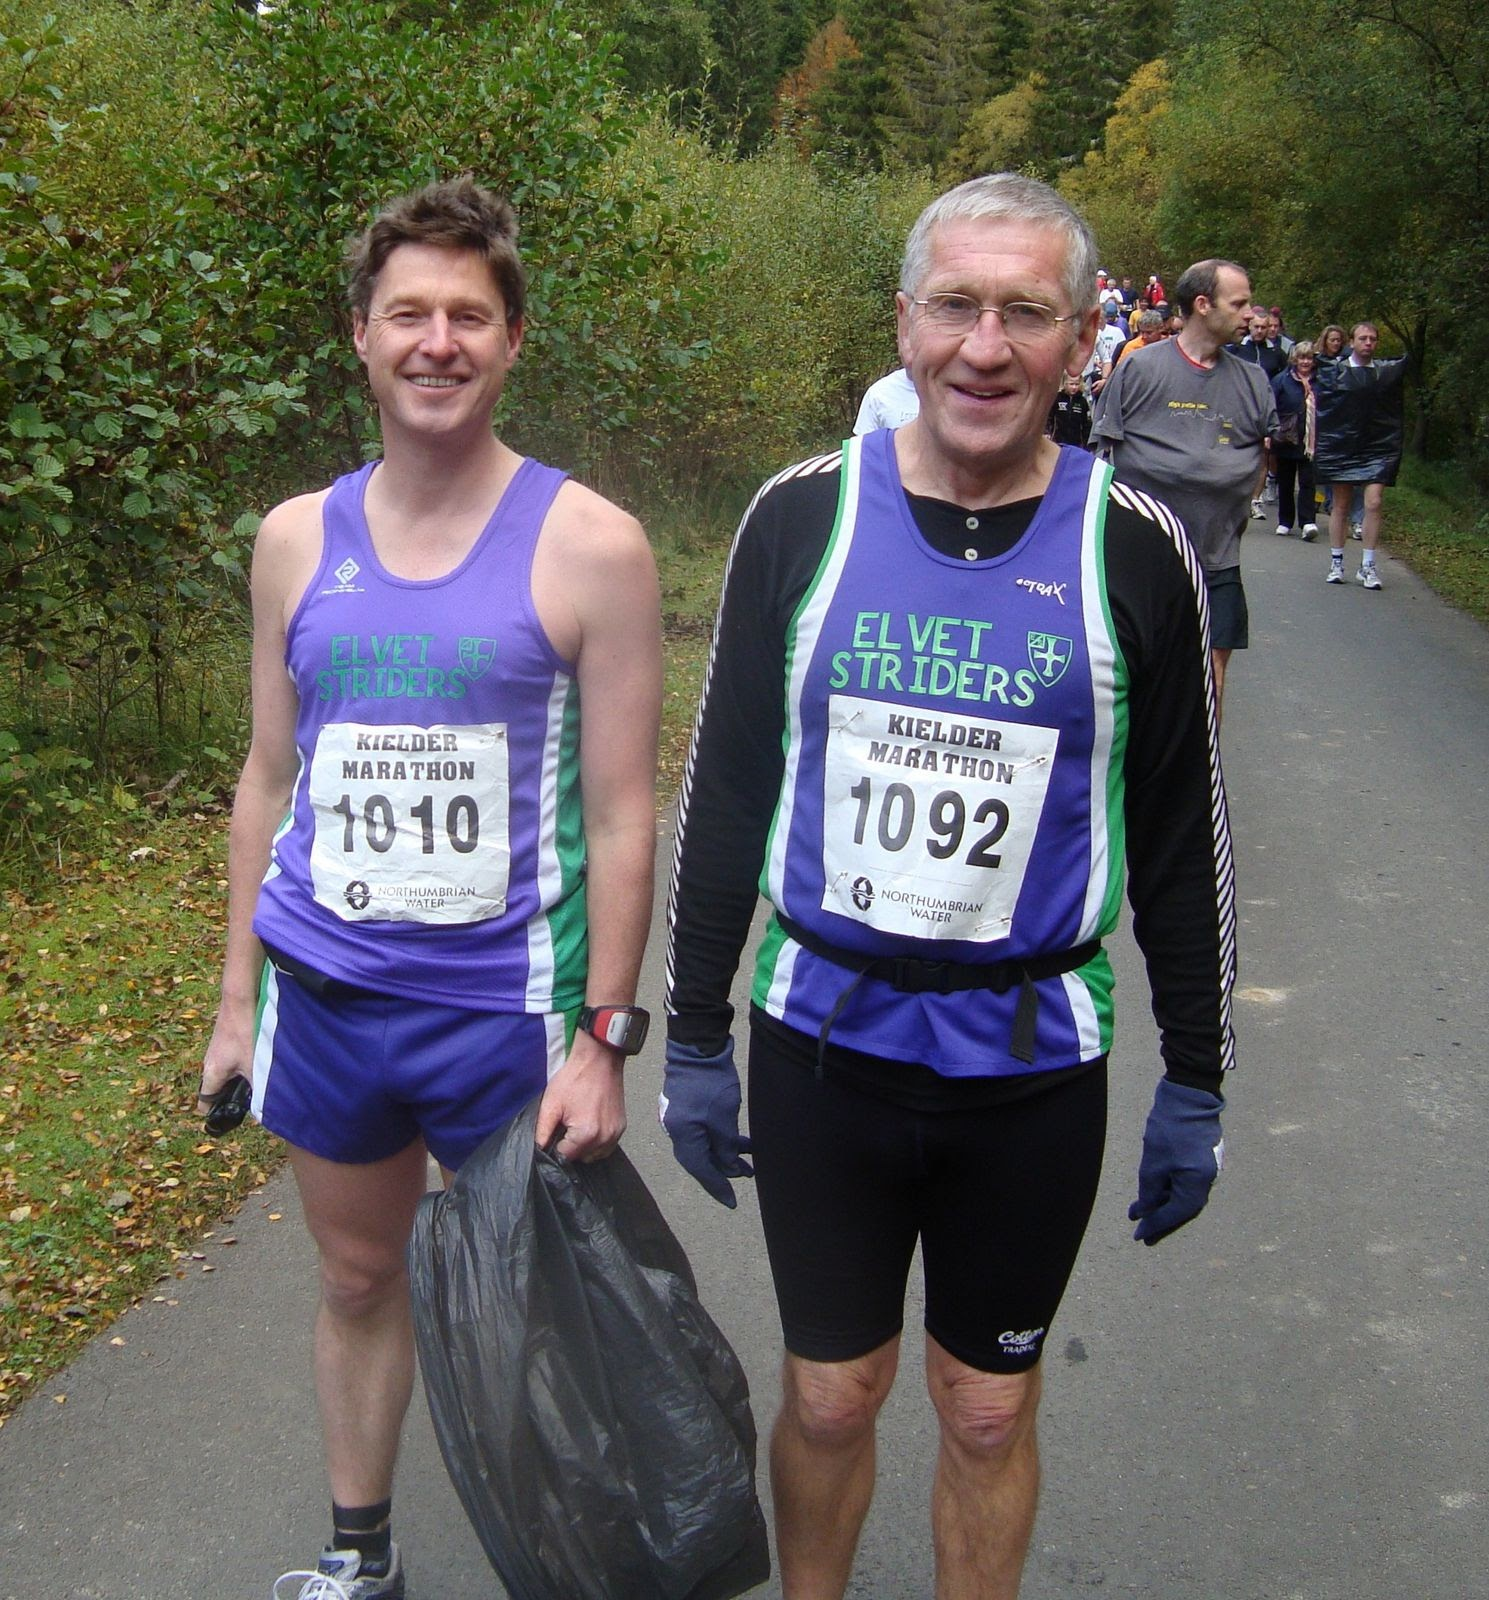 Dougie Nisbet -- Alan Purvis -- Kielder Marathon - 2010 -- photo by Dave Robson -- Sun 17 Oct 2010 08-57-02 BST_1.jpg